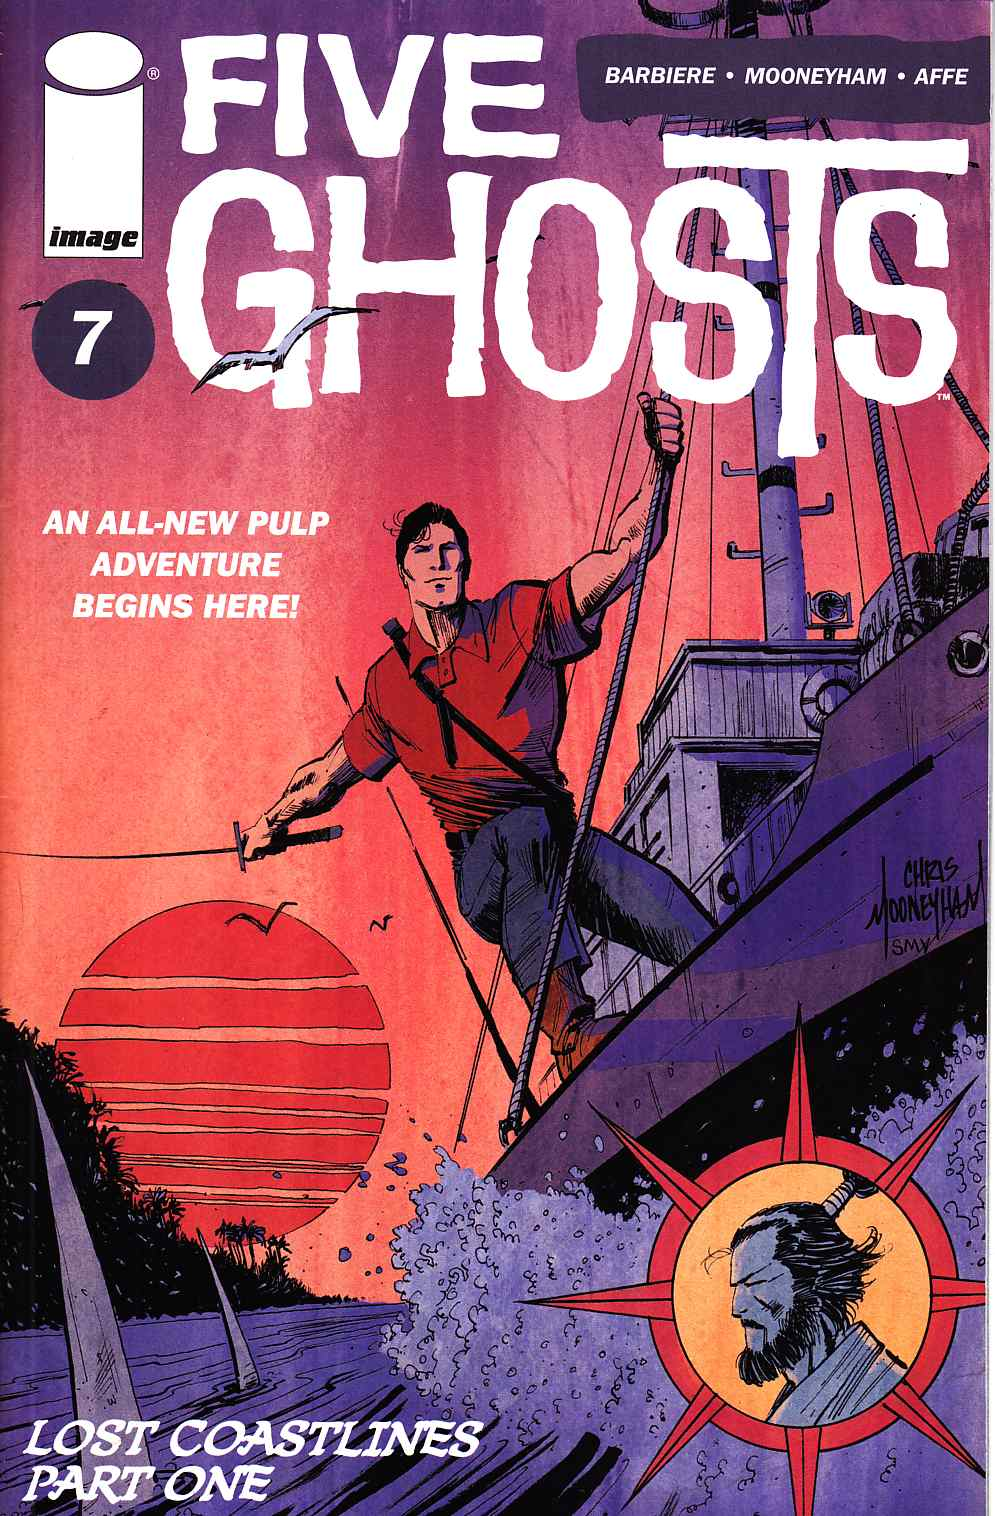 Five Ghosts #7 [Image Comic] THUMBNAIL